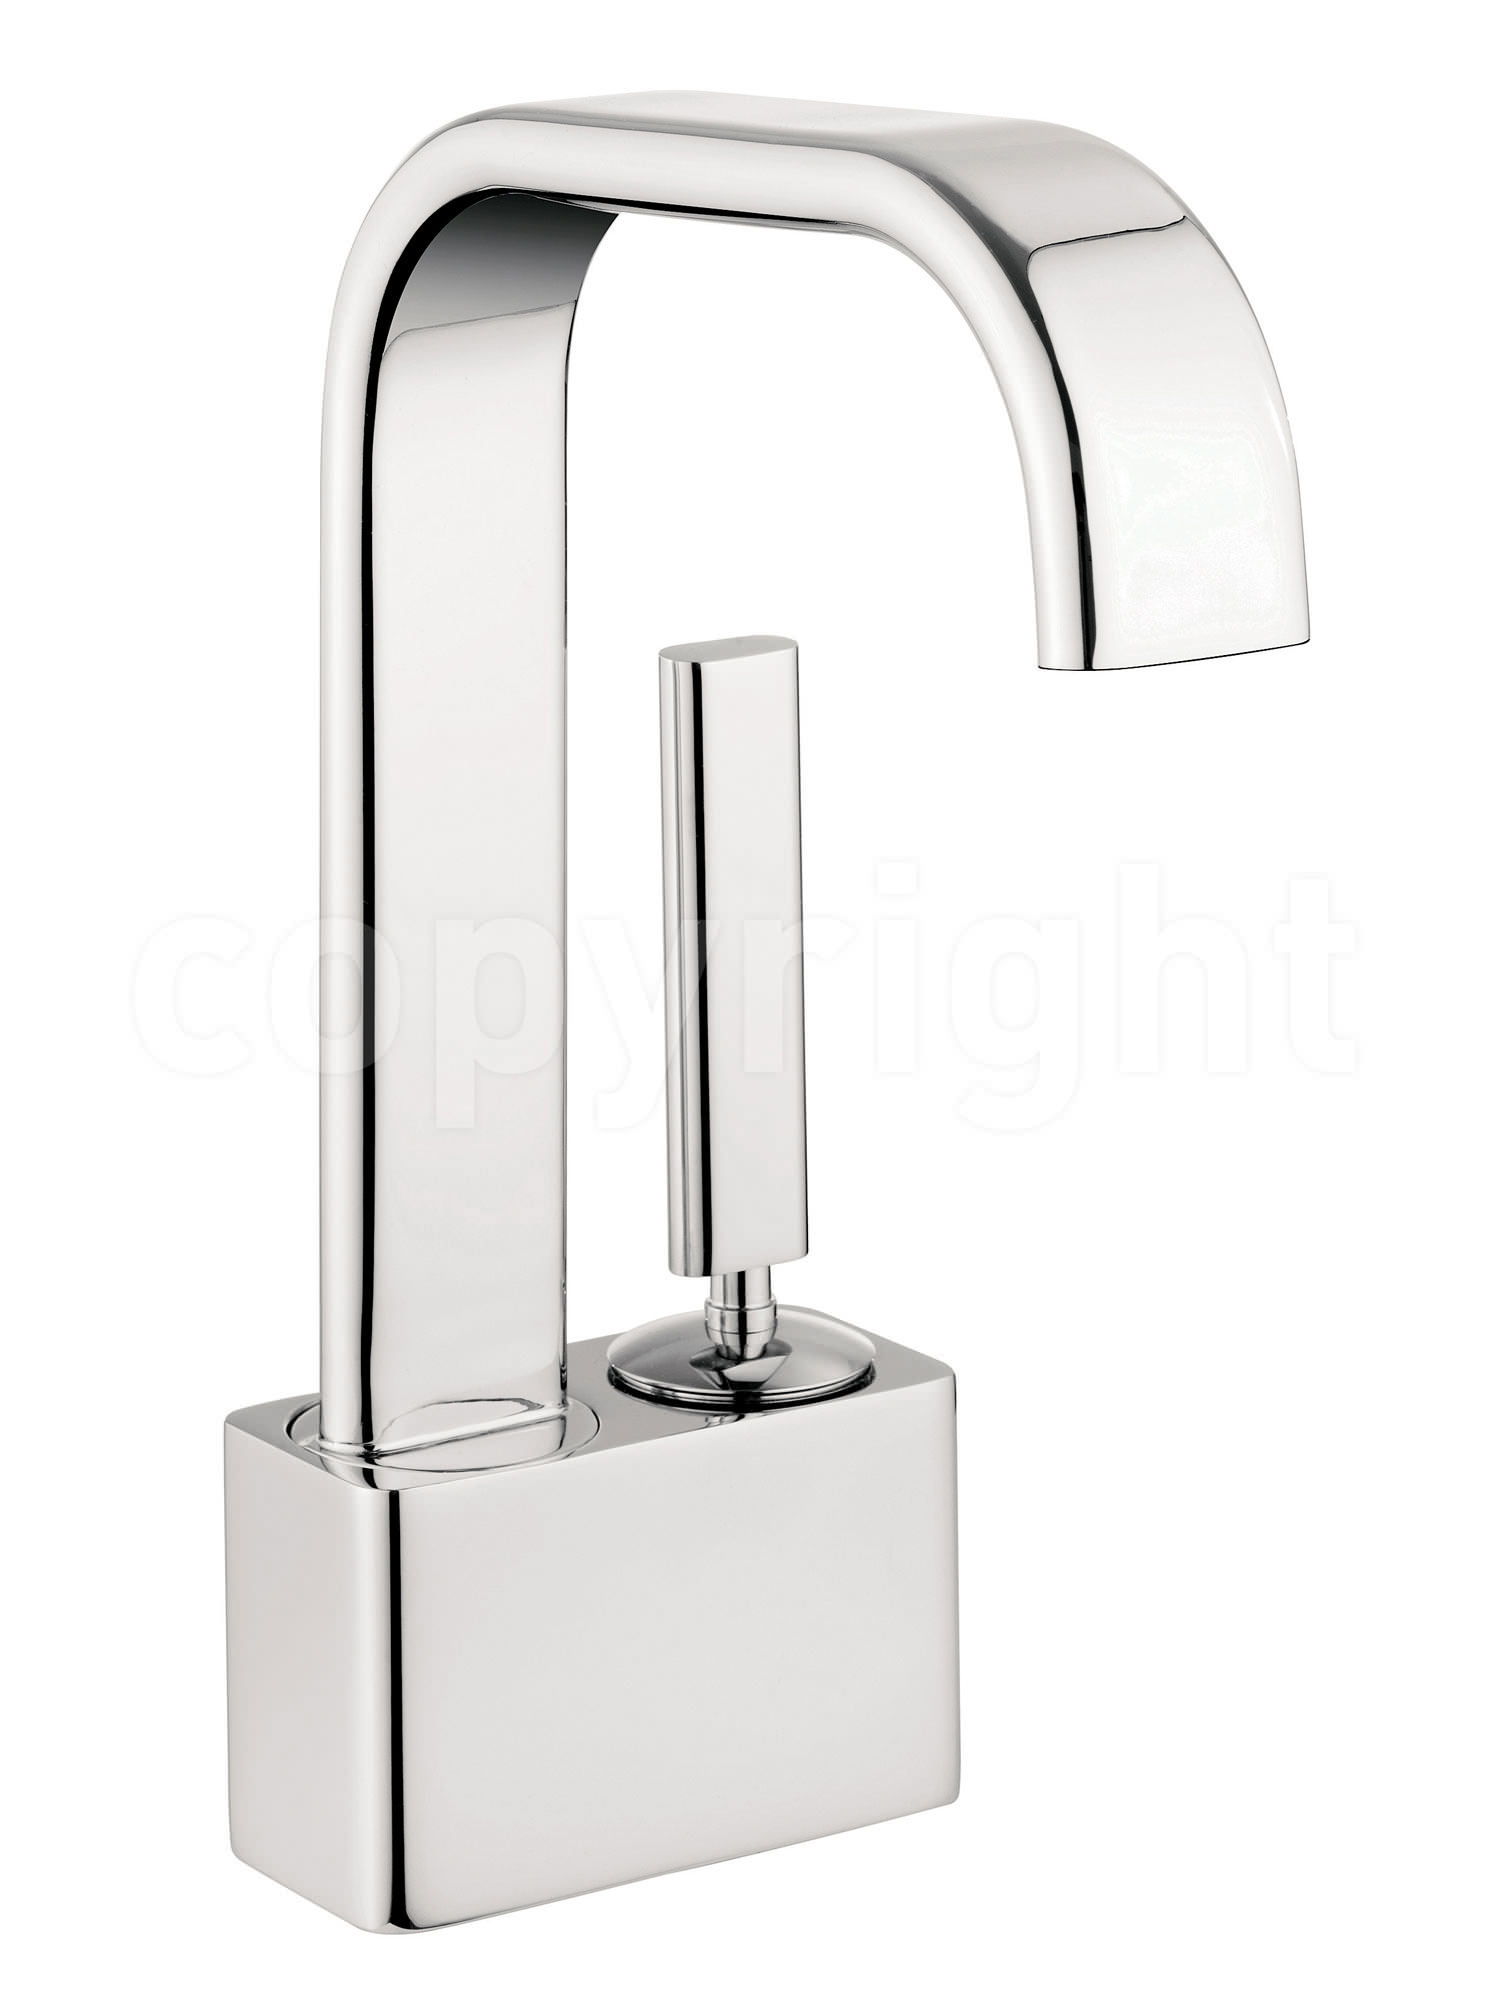 crosswater edge monobloc basin mixer tap chrome ee110dnc. Black Bedroom Furniture Sets. Home Design Ideas